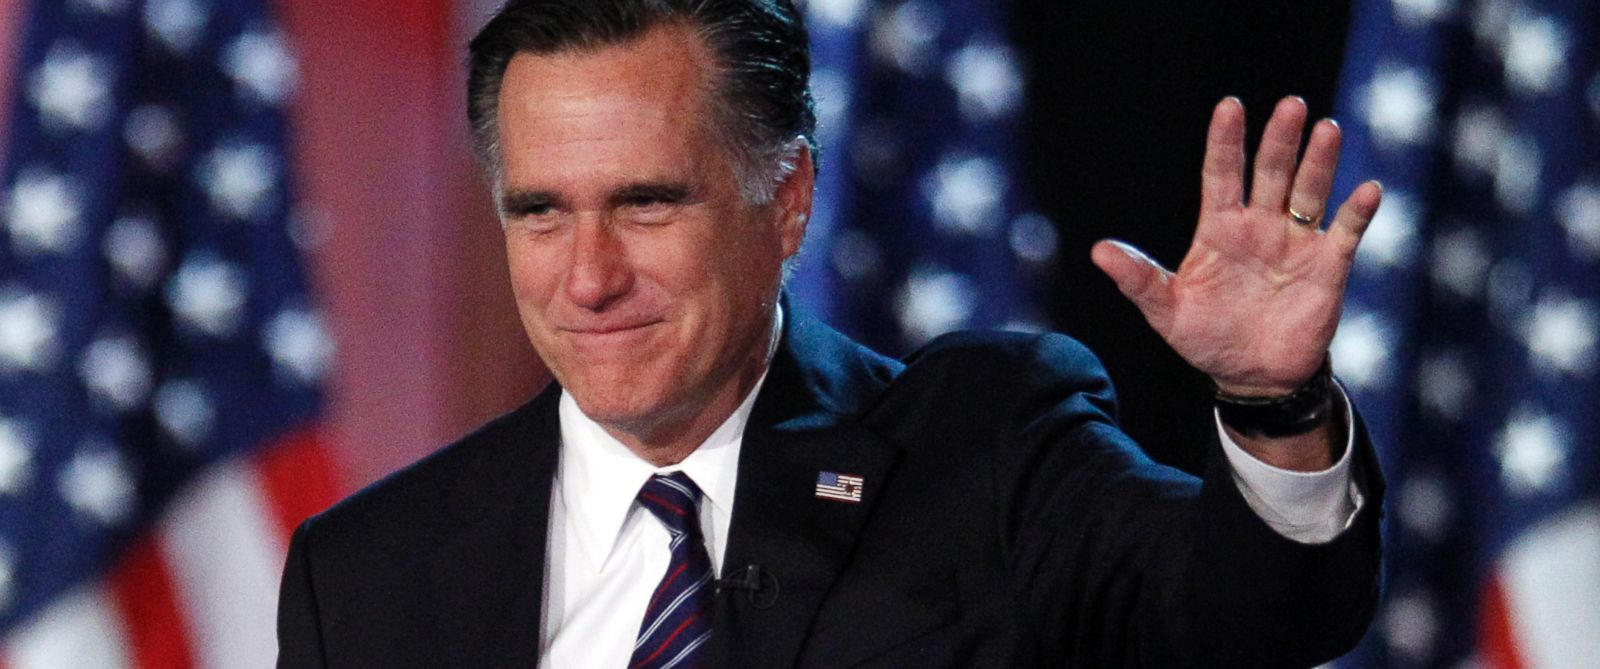 PHOTO: Mitt Romney is pictured waving to supporters at an election night rally in Boston on Nov. 7, 2012.